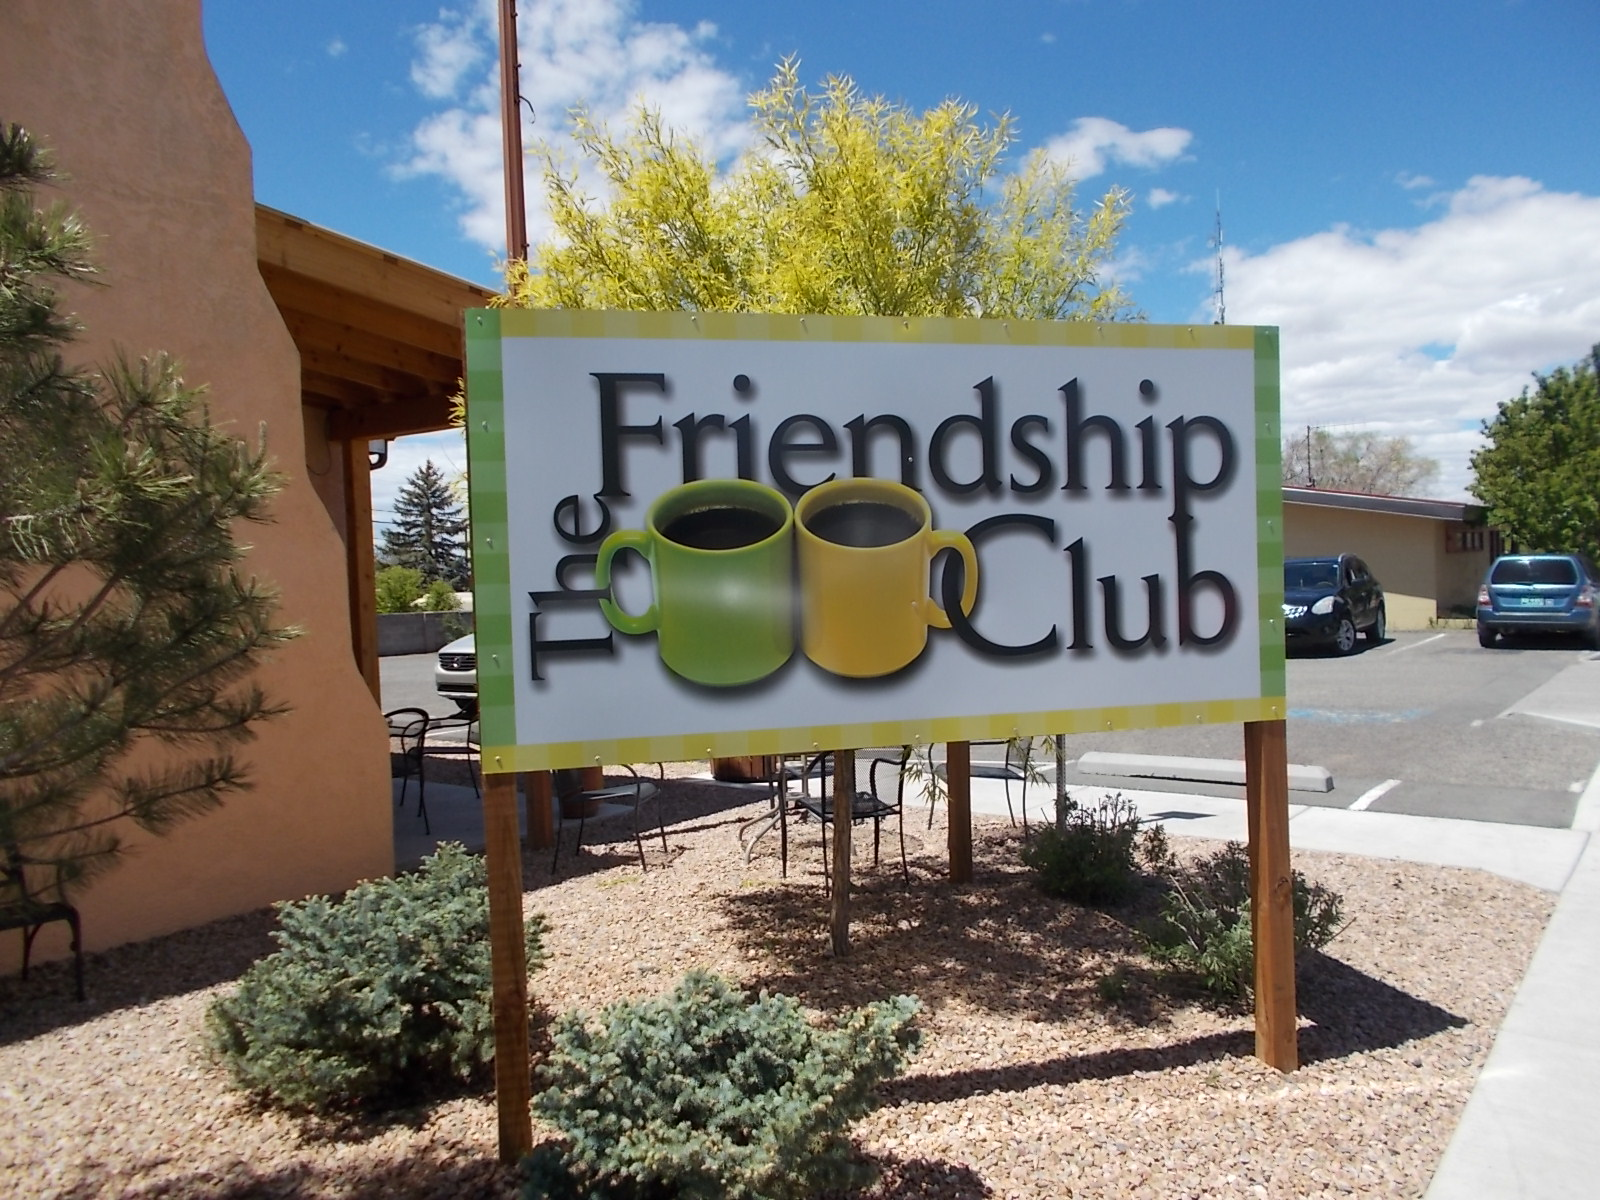 Friendship club santa fe